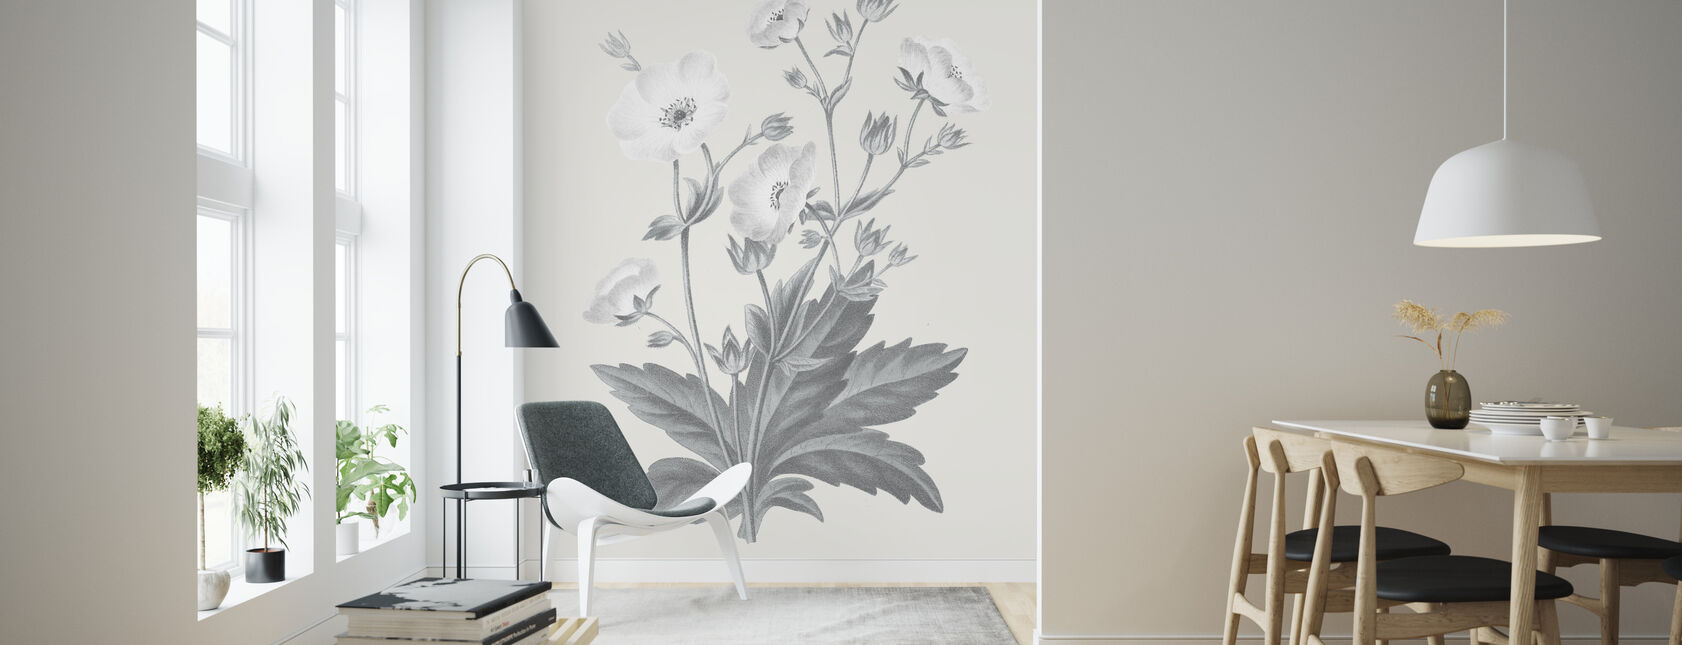 Neutral Botanical VI - Wallpaper - Living Room